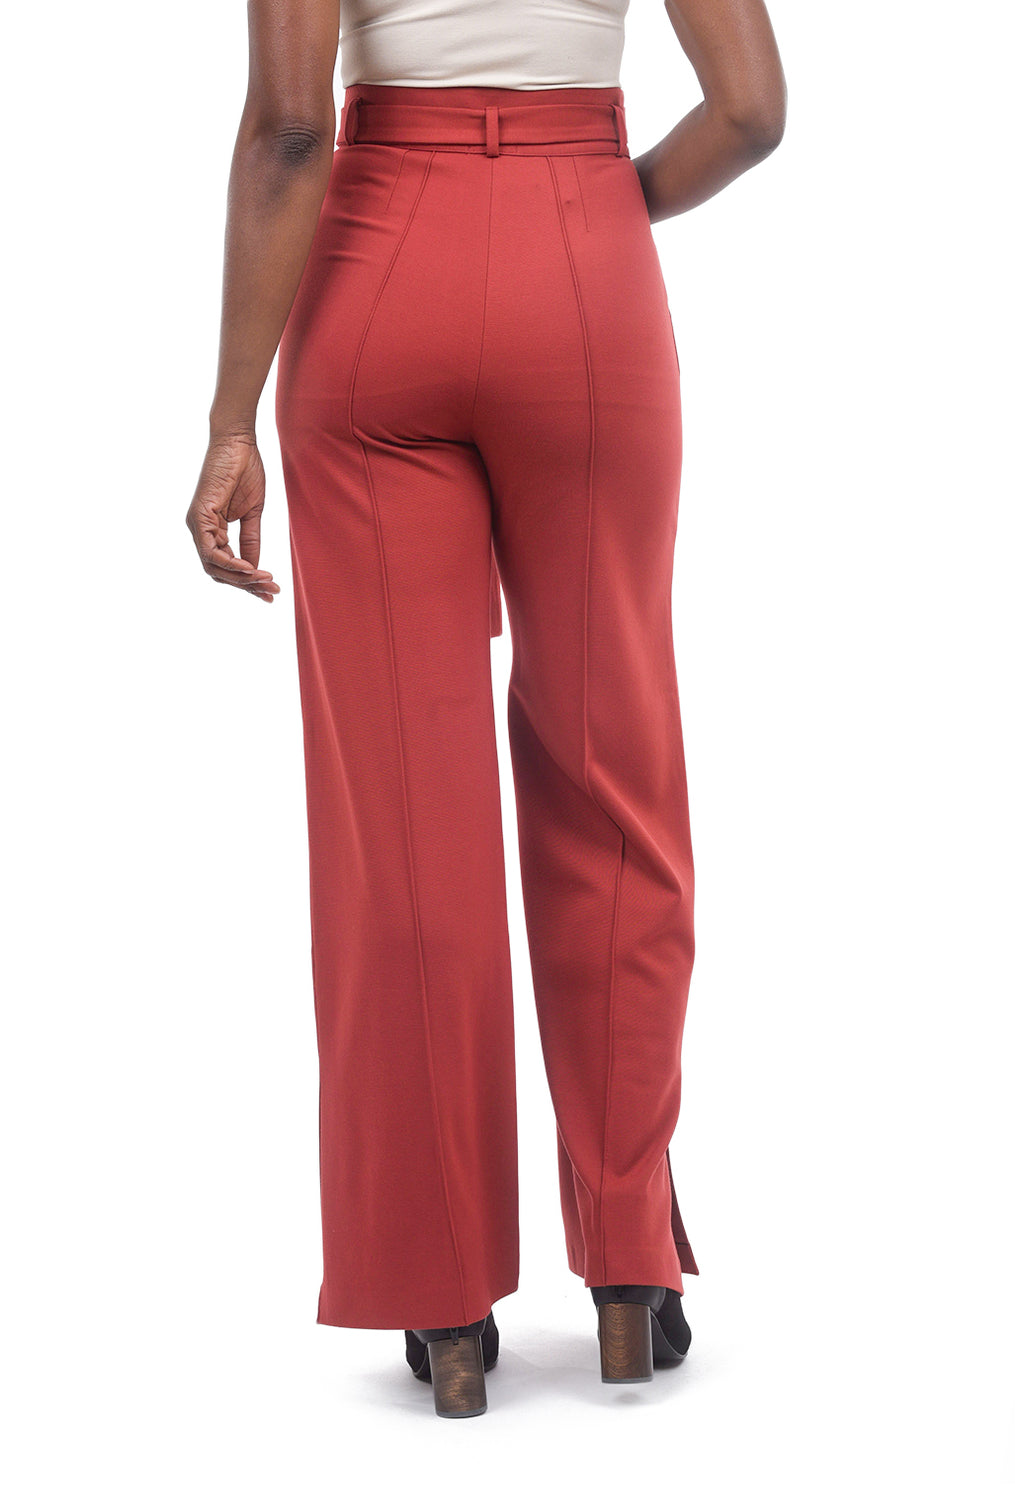 Ivko Women Belted Knit Trousers, Sundried Tomato